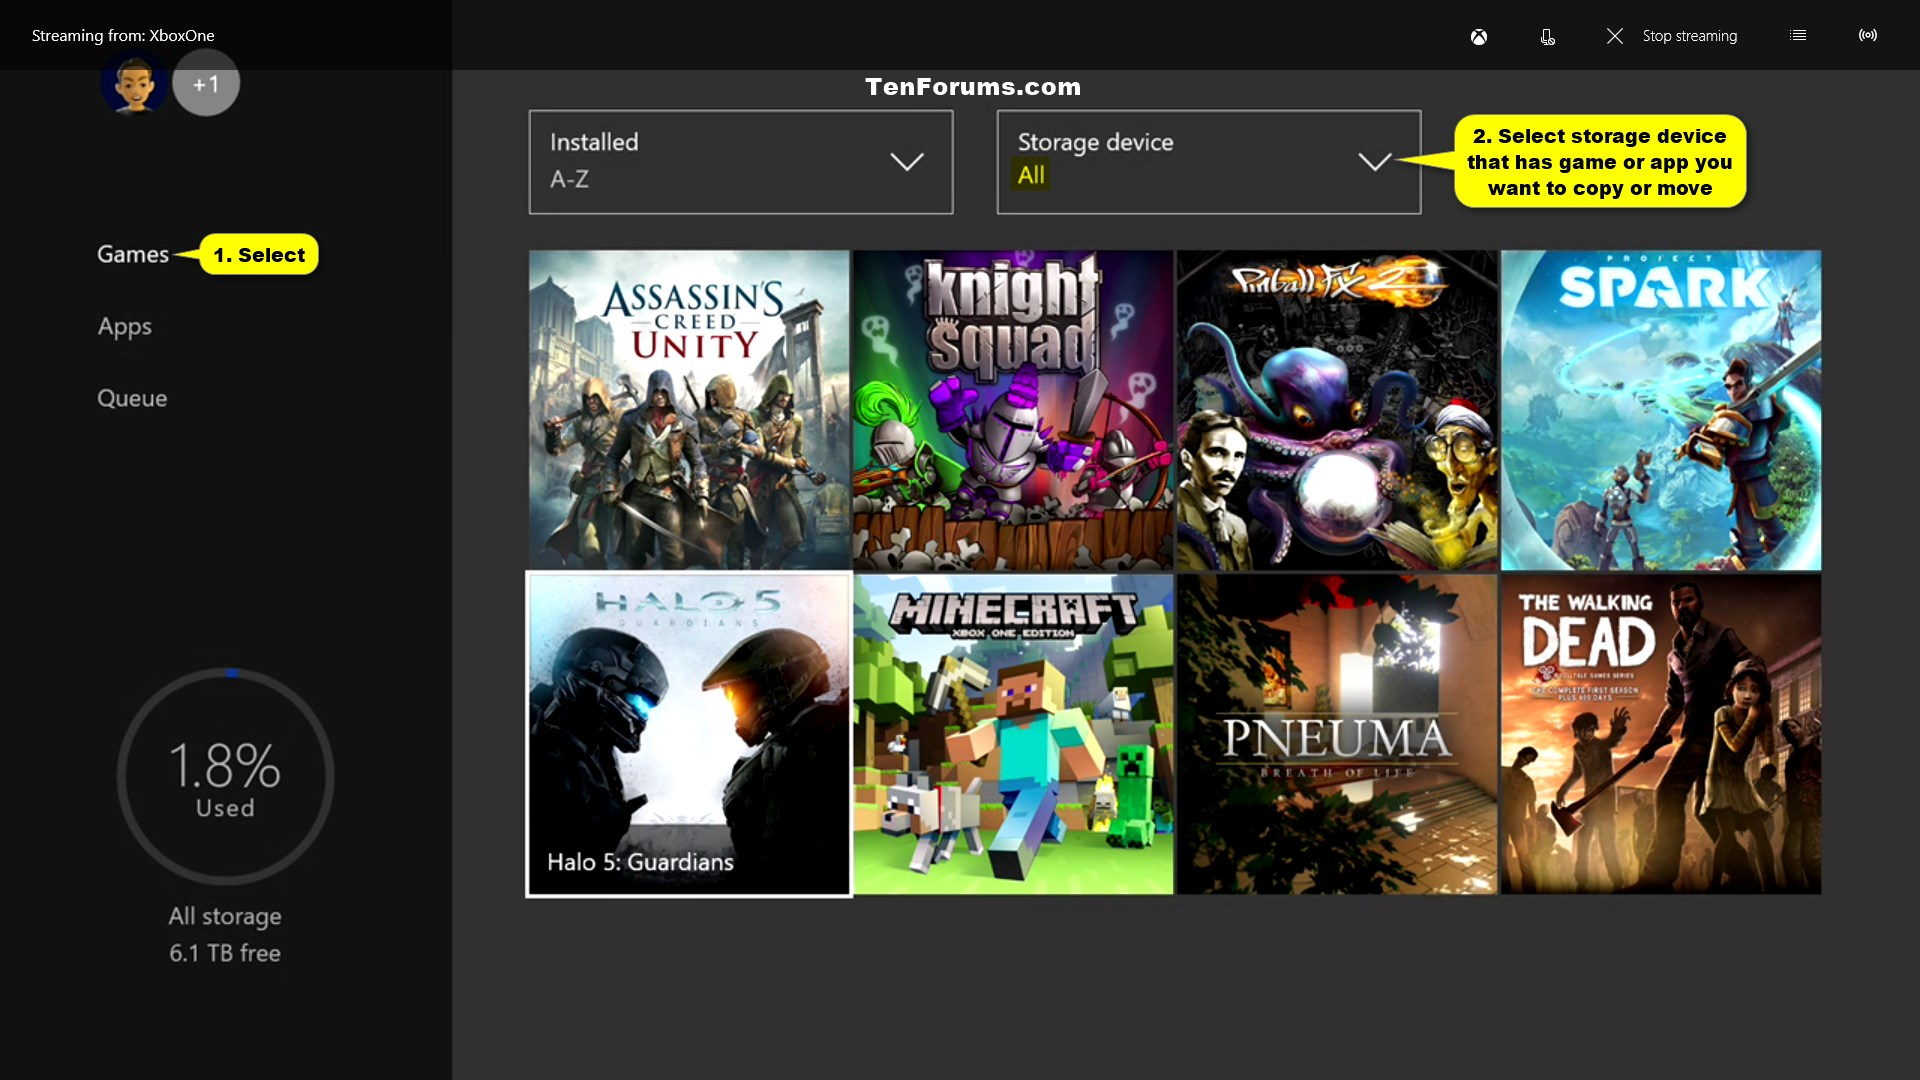 Xbox One Games S : Move or copy xbox one games and apps between storage